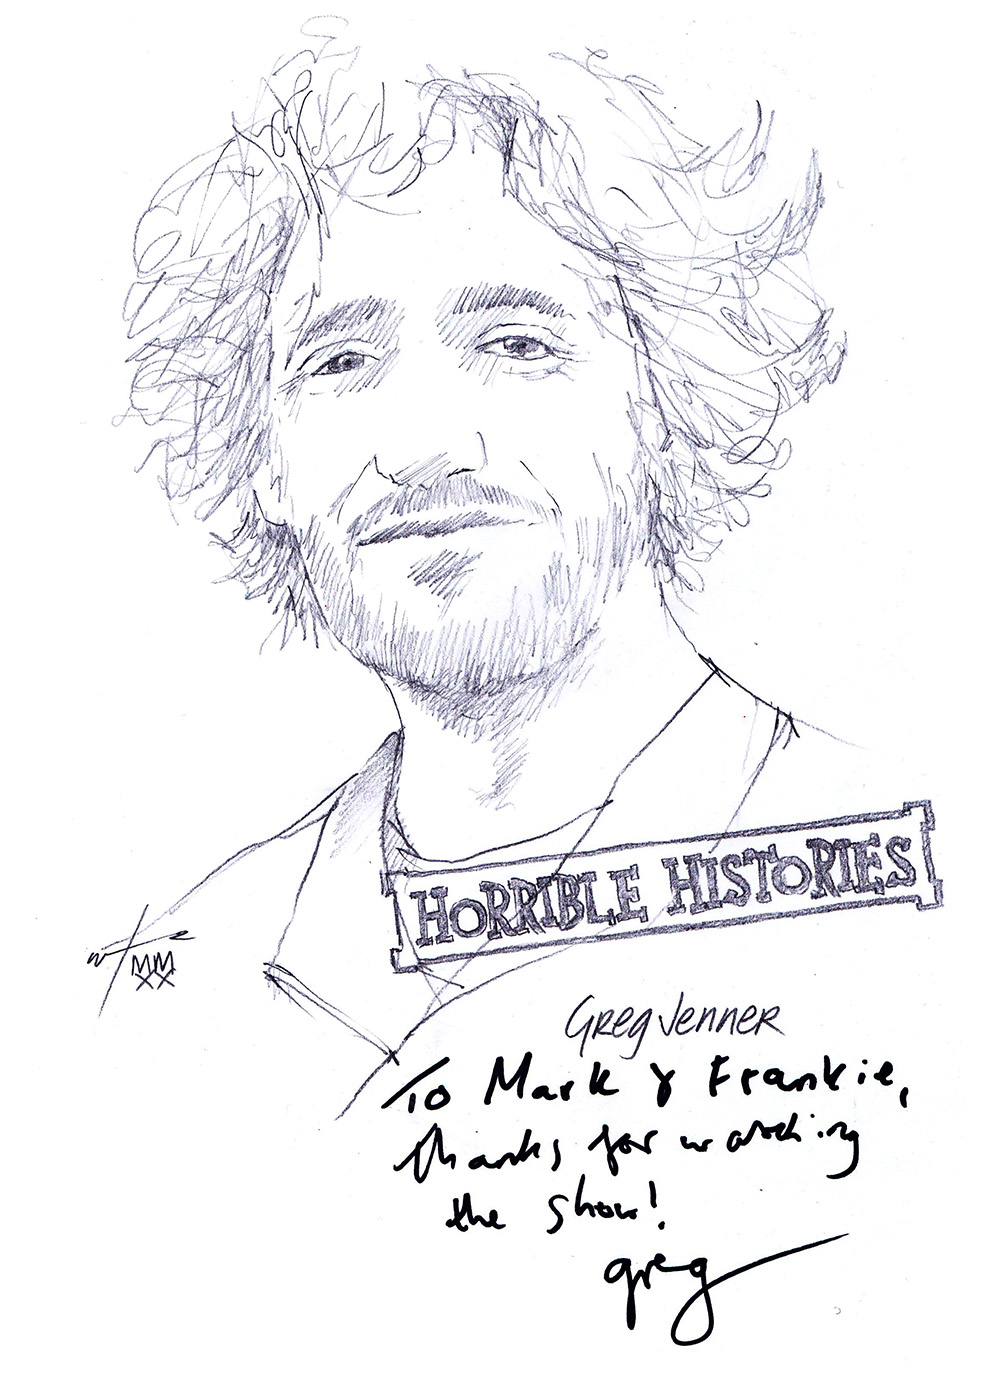 Autographed drawing of public historian Greg Jenner